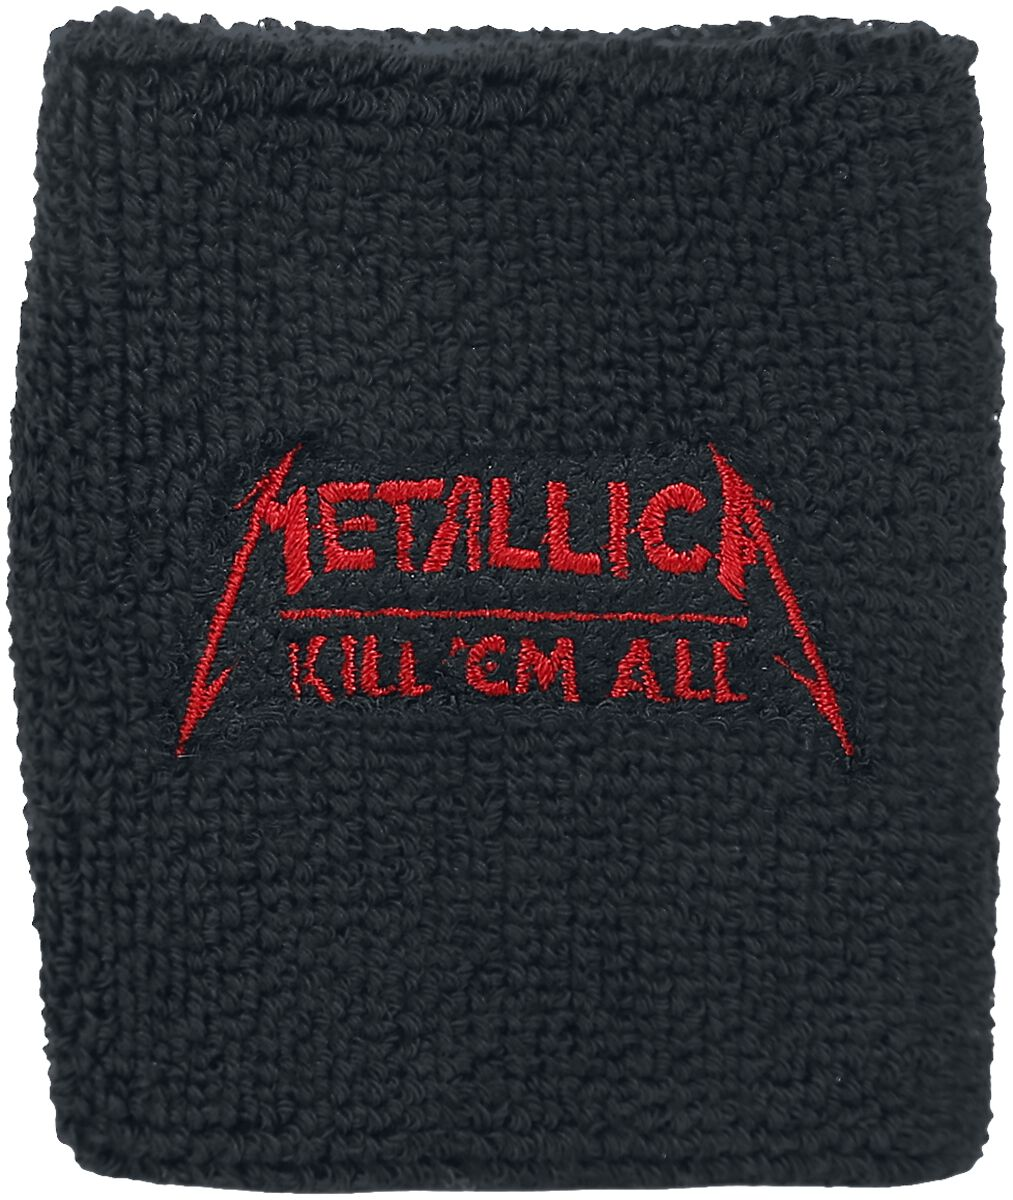 Image of   Metallica Kill 'Em All Armbånd sort